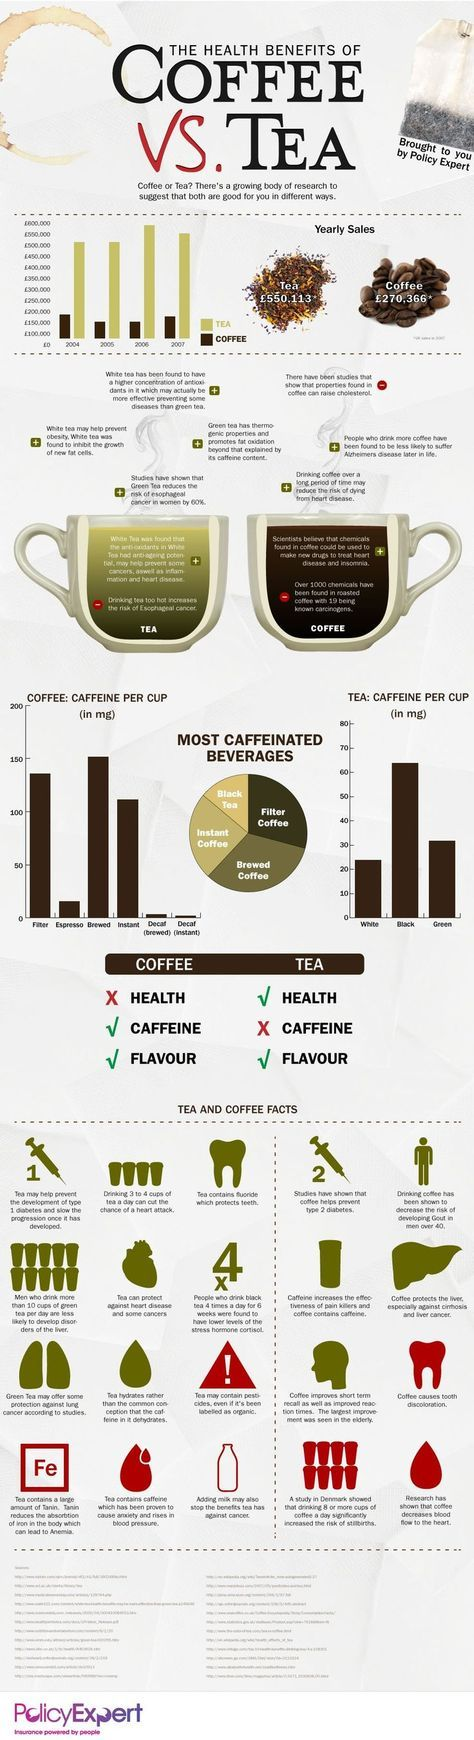 So, for the most part, my addiction to coffee and tea is a positive thing. lol.